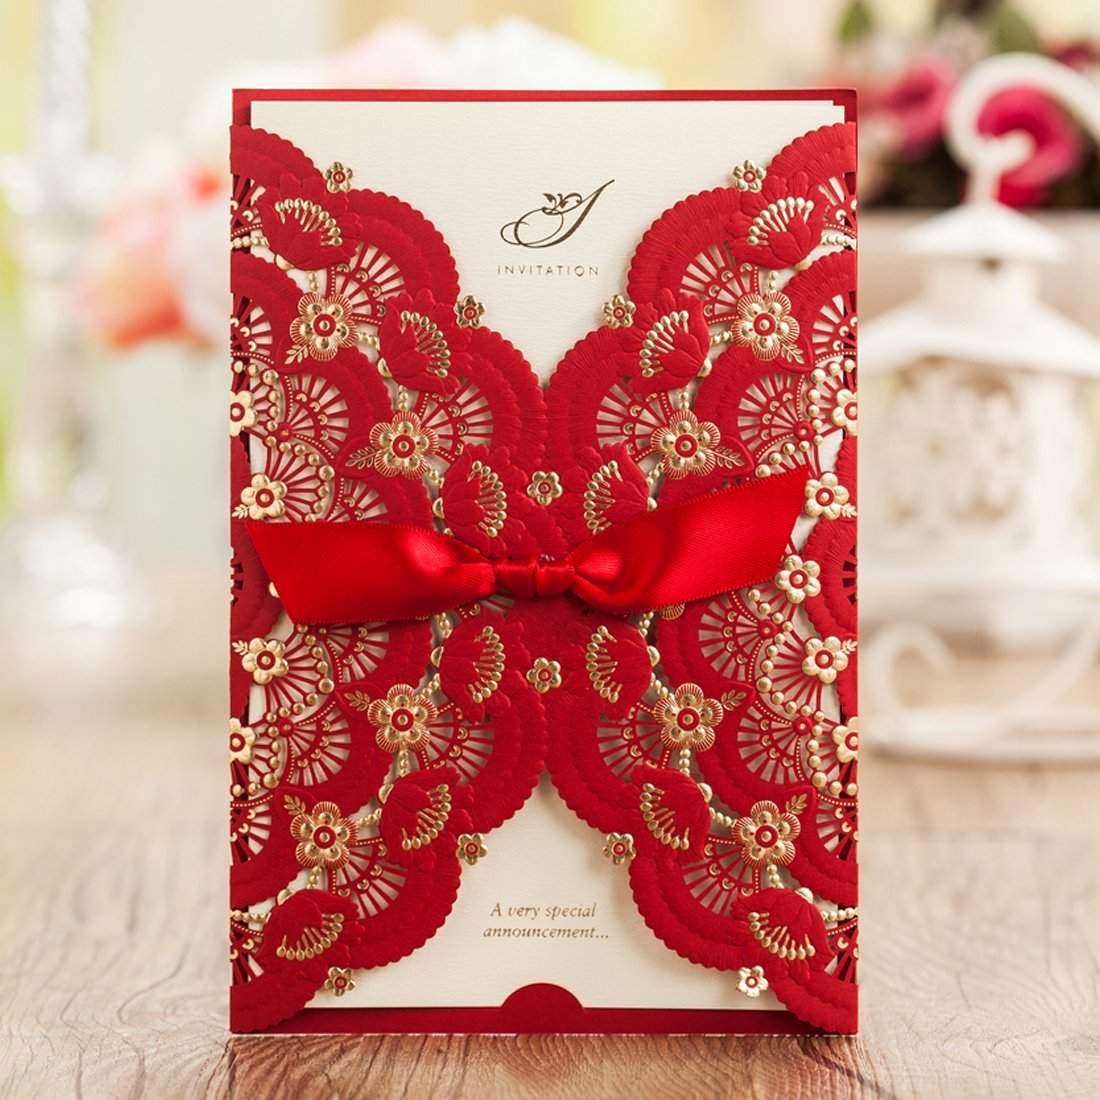 Cheap Wedding Invitation Ideas Elegant top 10 Best Cheap Diy Wedding Invitations